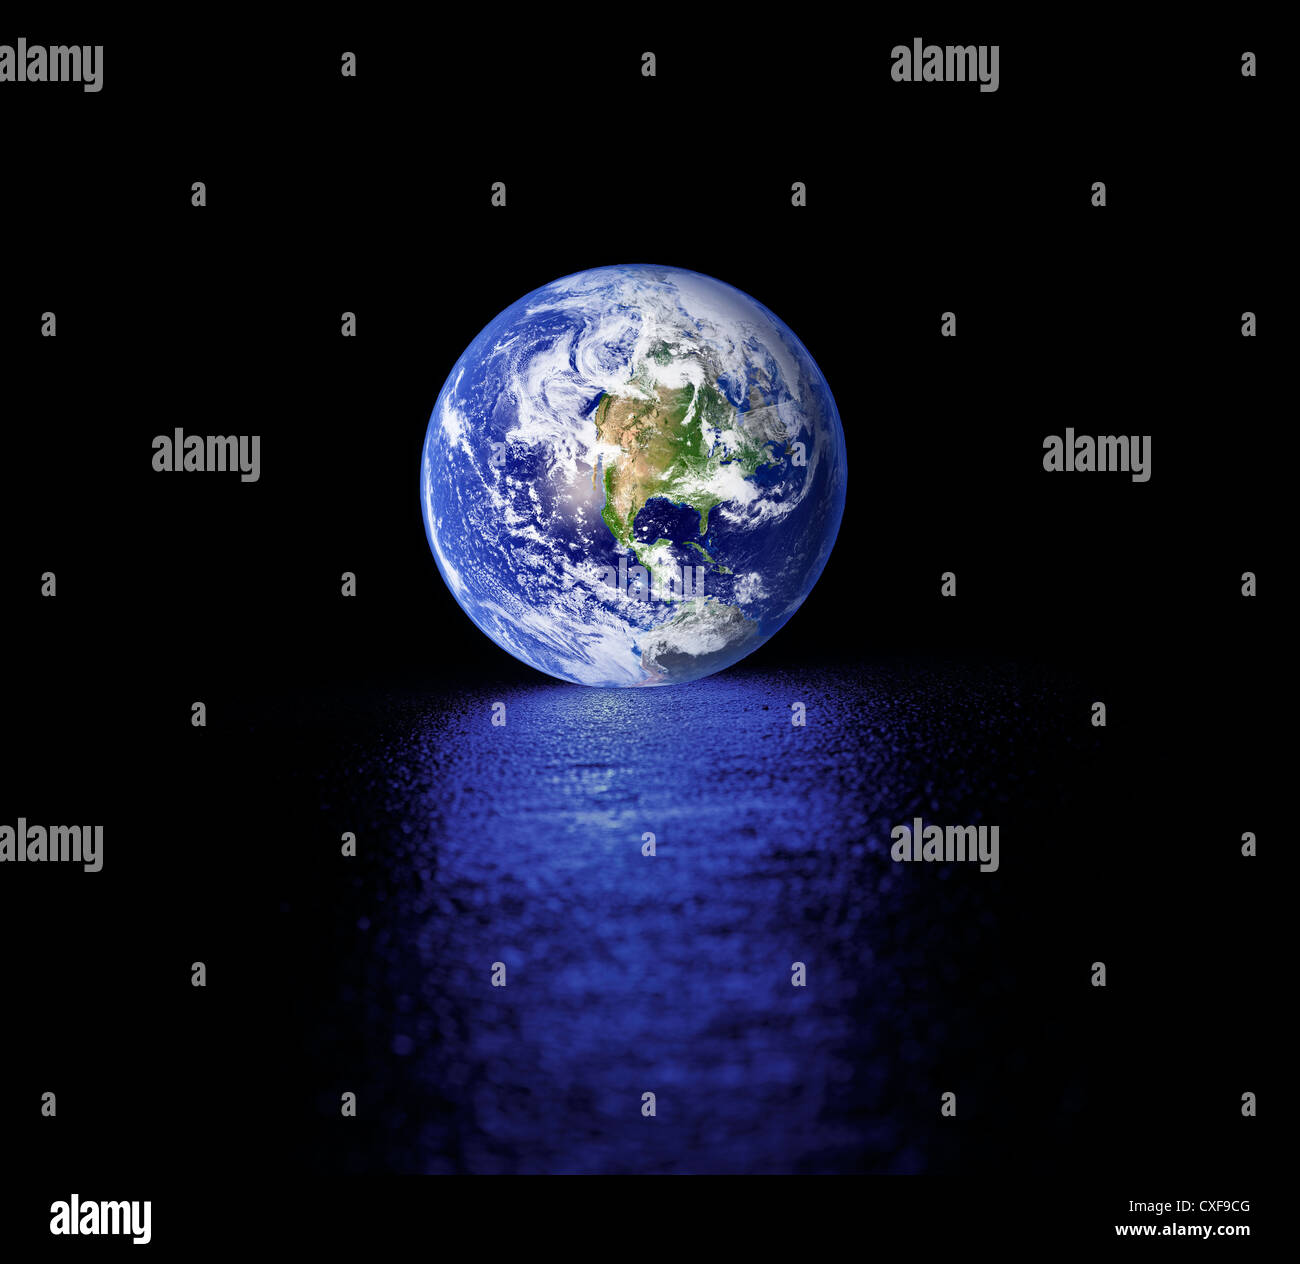 Glowing Planet earth on wet asphalt. Earth image provided by NASA. - Stock Image